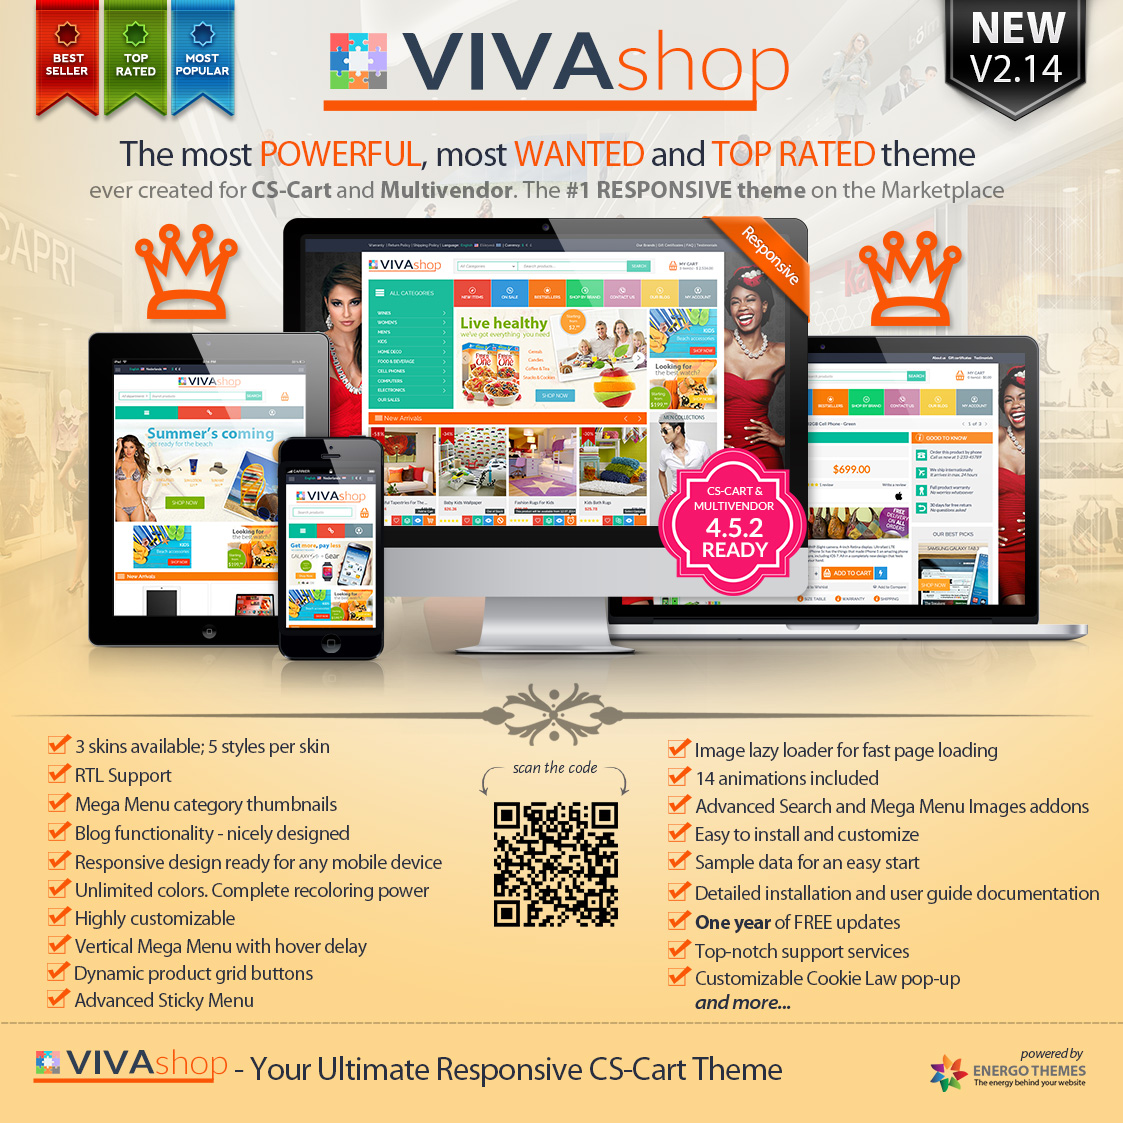 VIVAshop-V2.14-presentation-page-MP.jpg